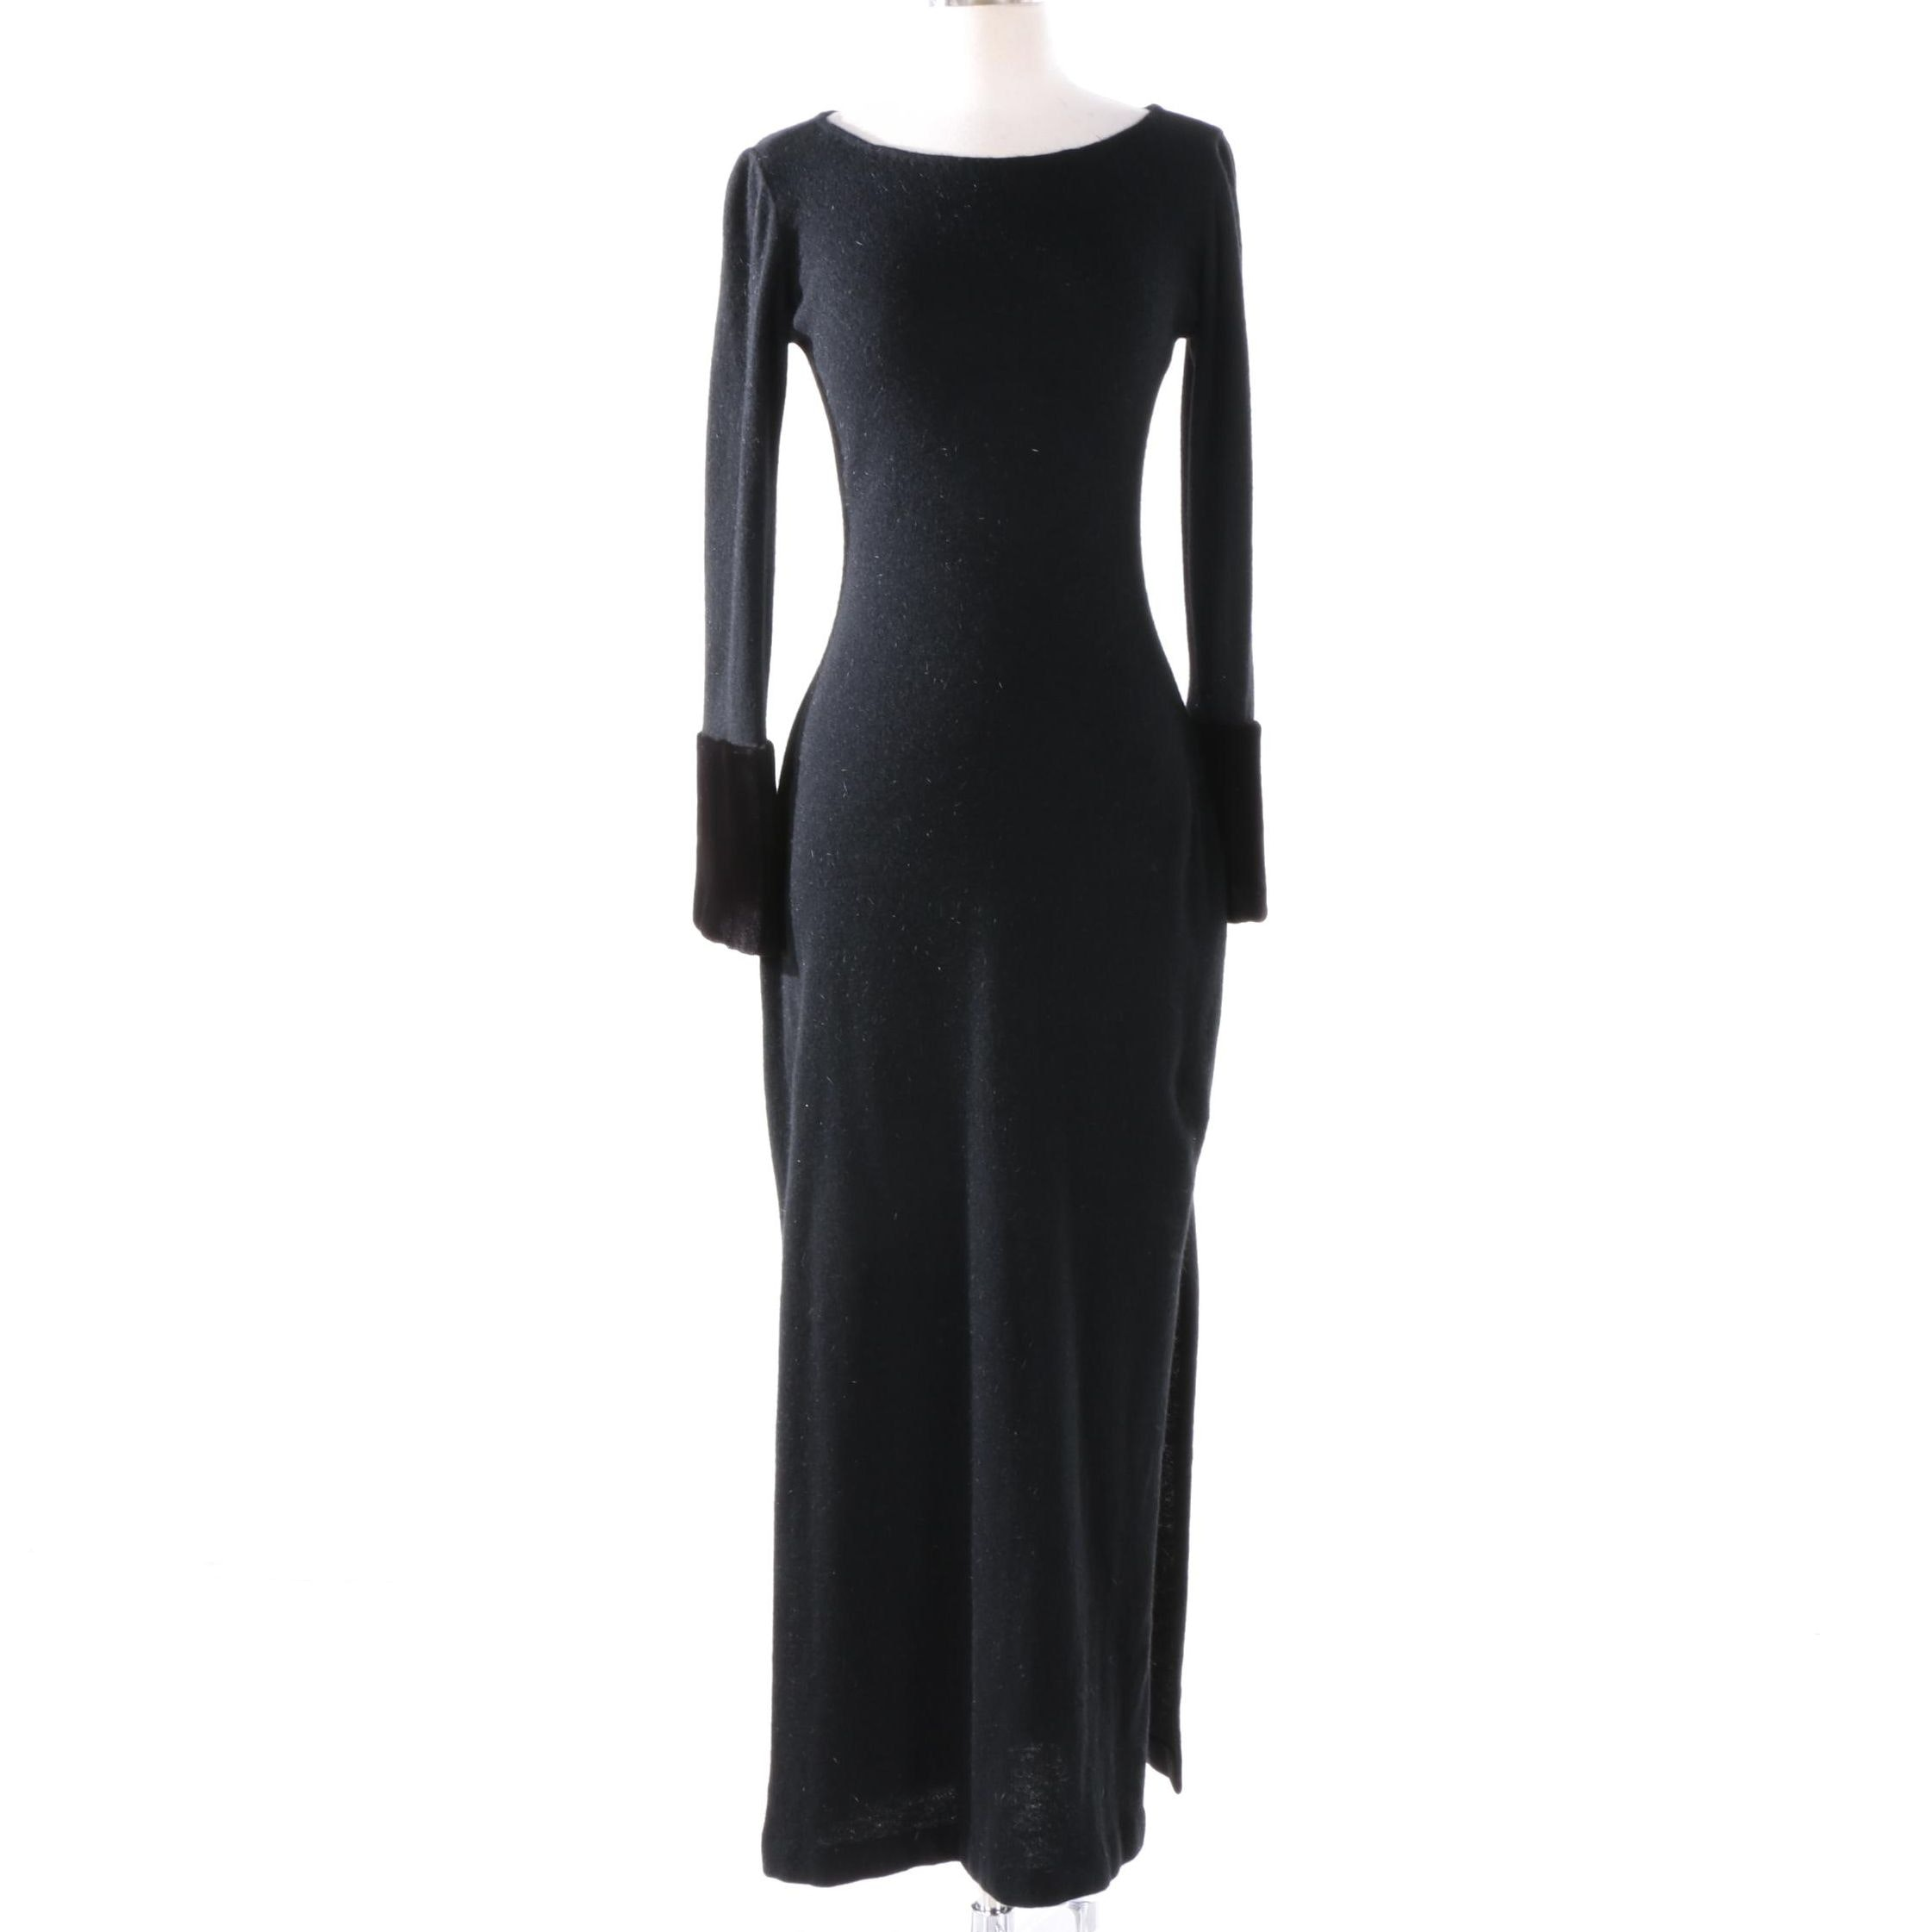 Pamela Dennis Couture Black Wool Dress with Sheared Mink Fur Cuffs